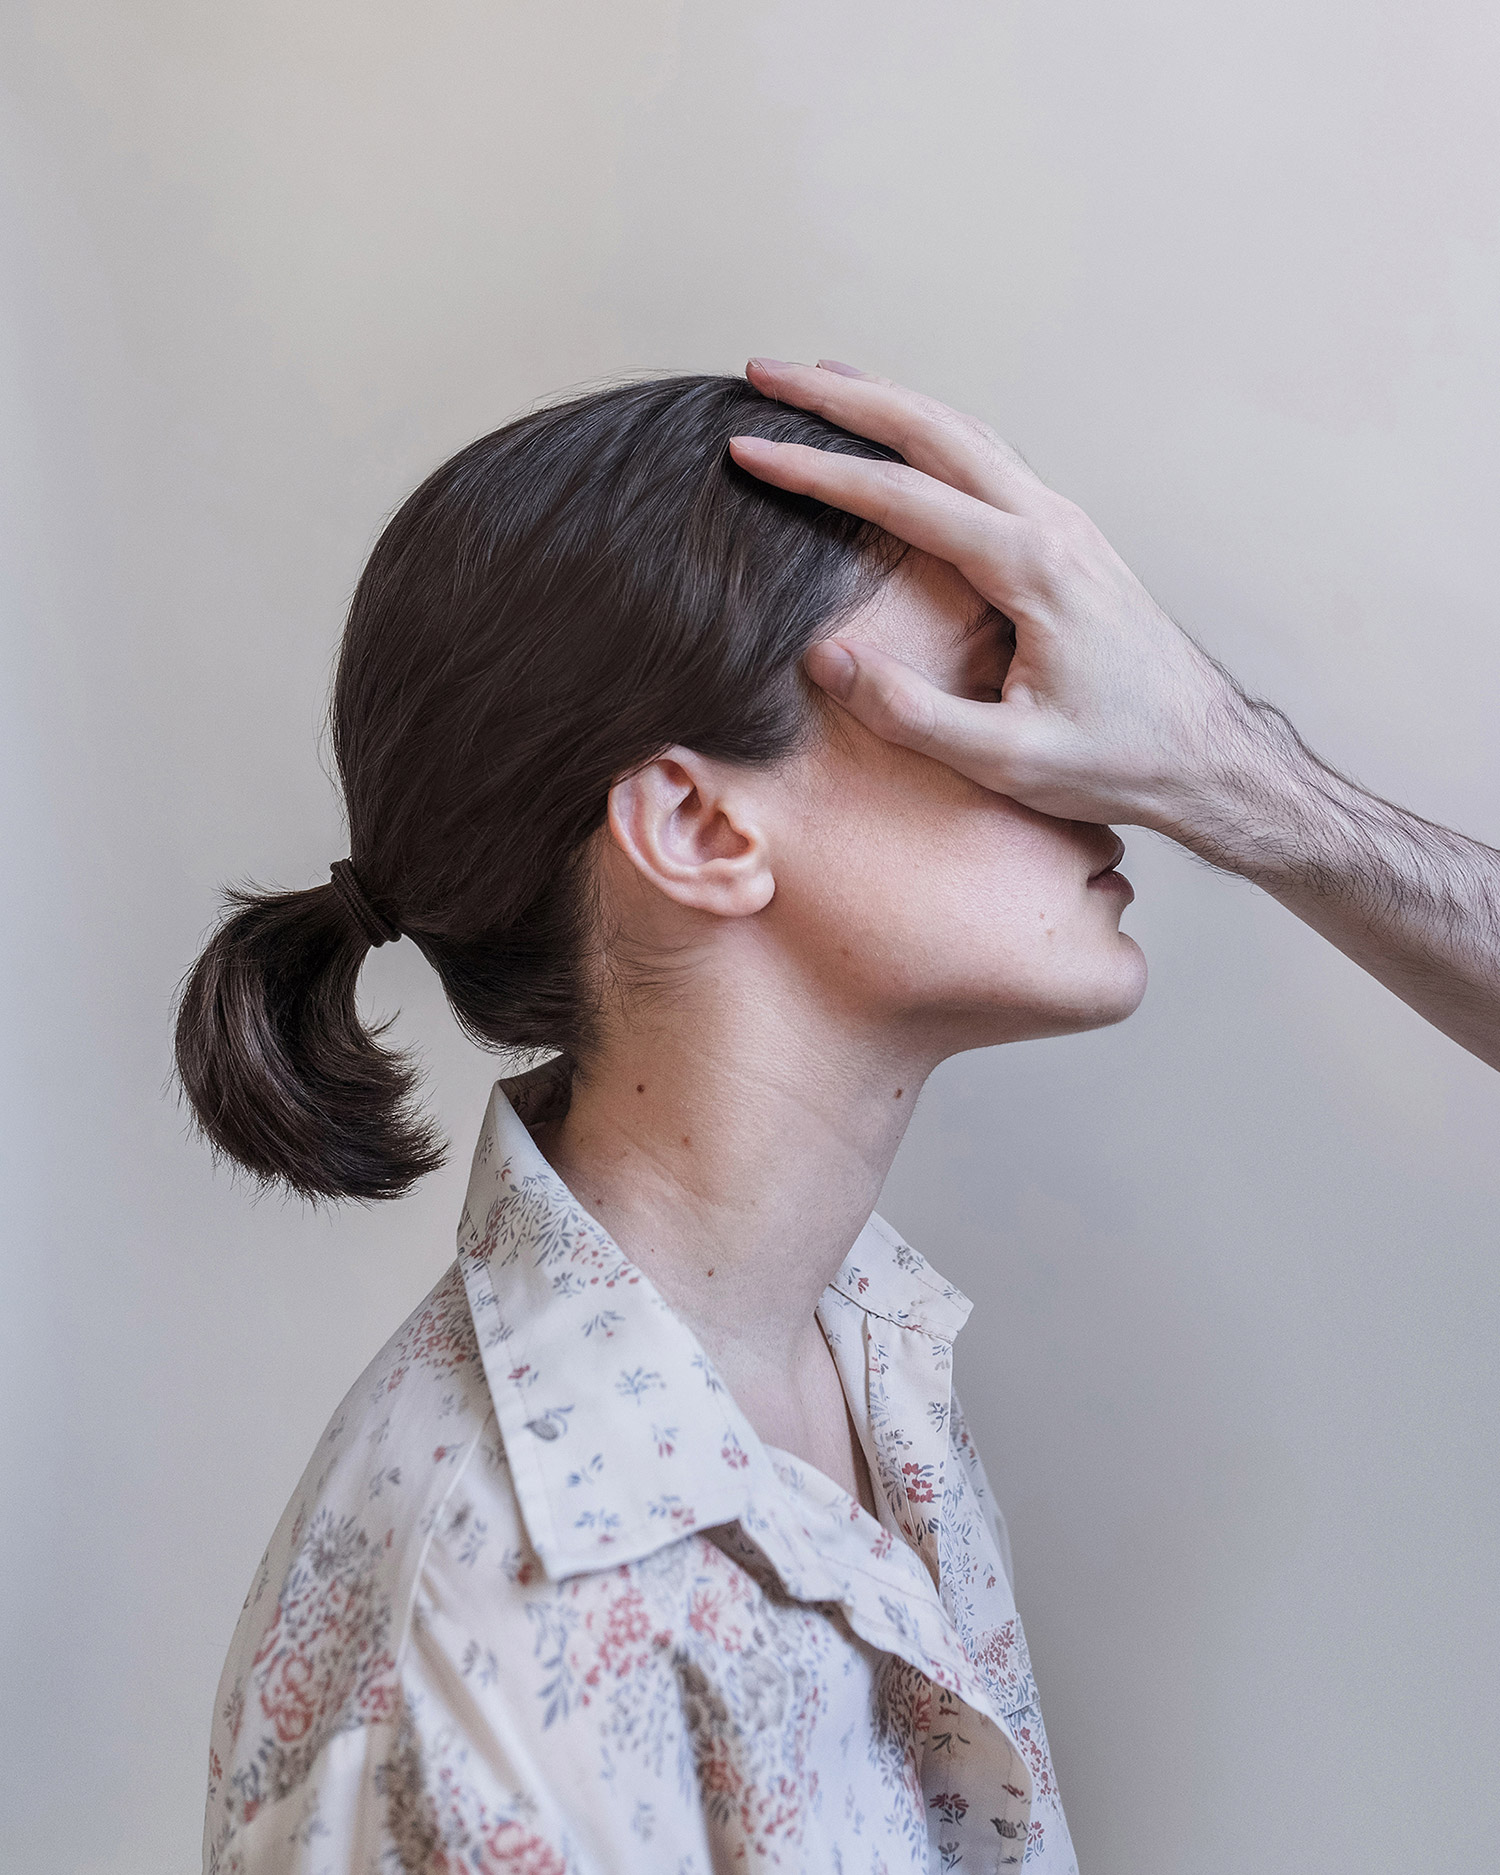 Brooke DiDonato - hand on face